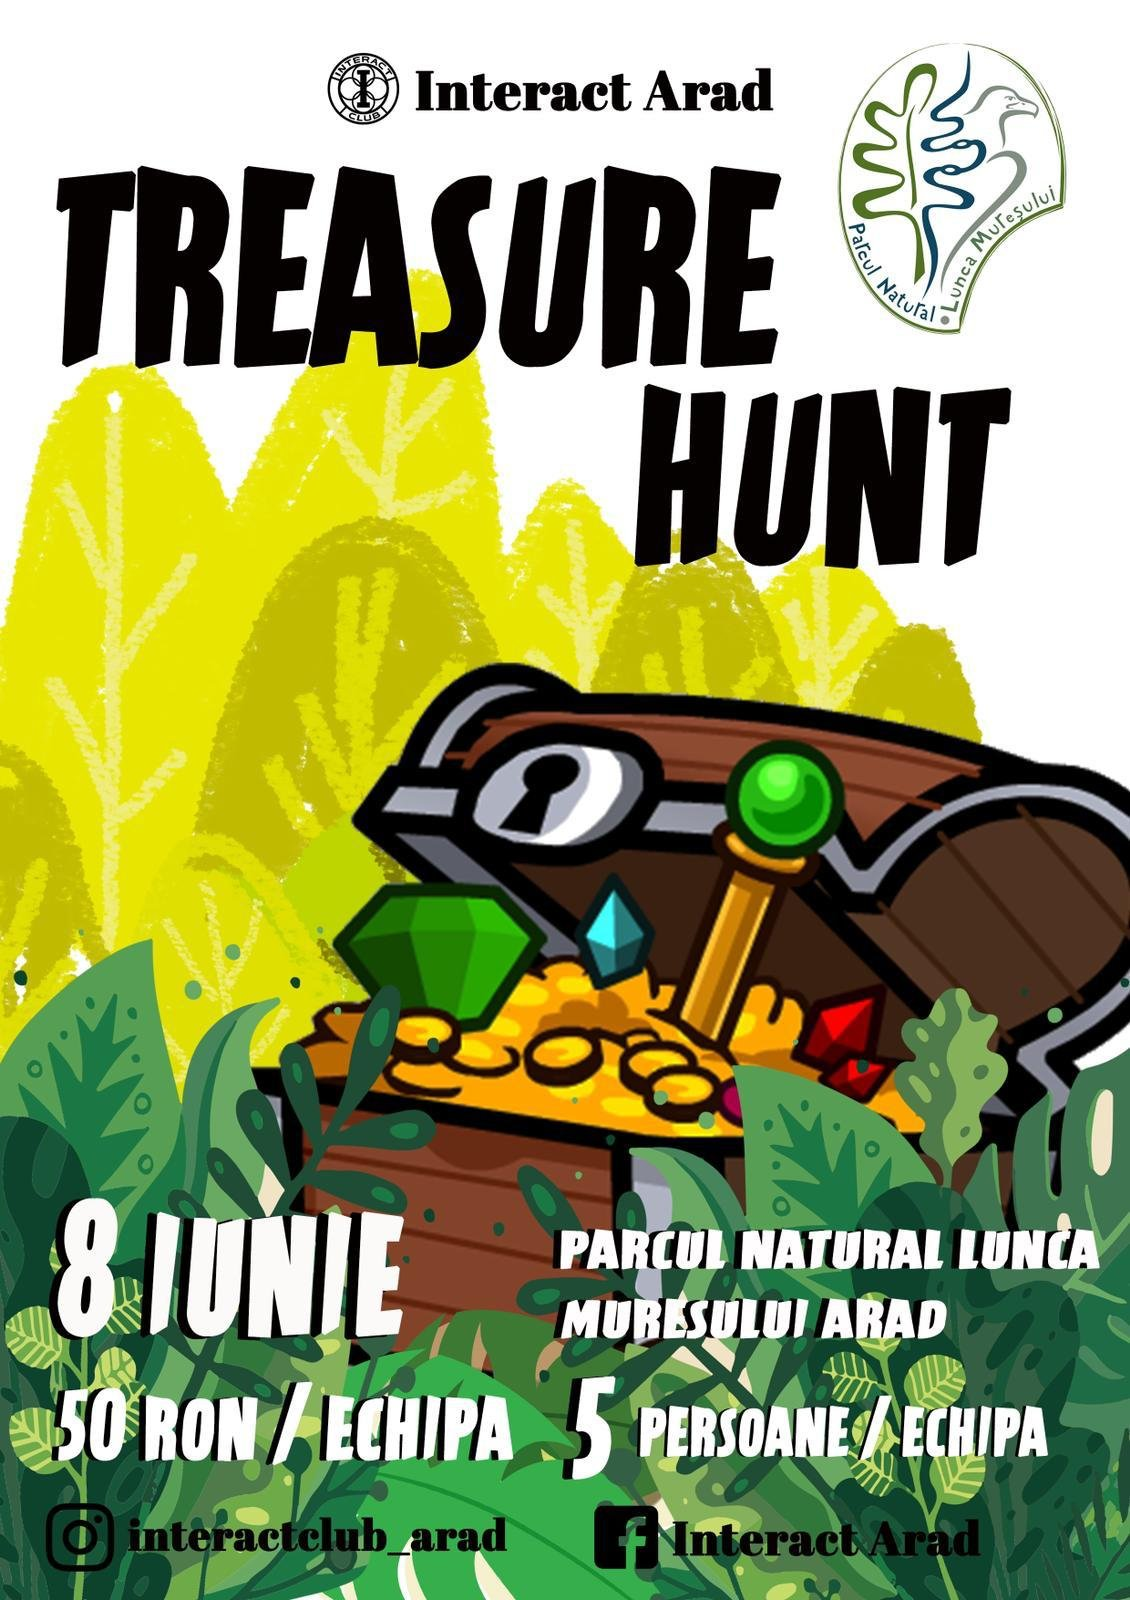 Treasure hunt, la ediția a III-a